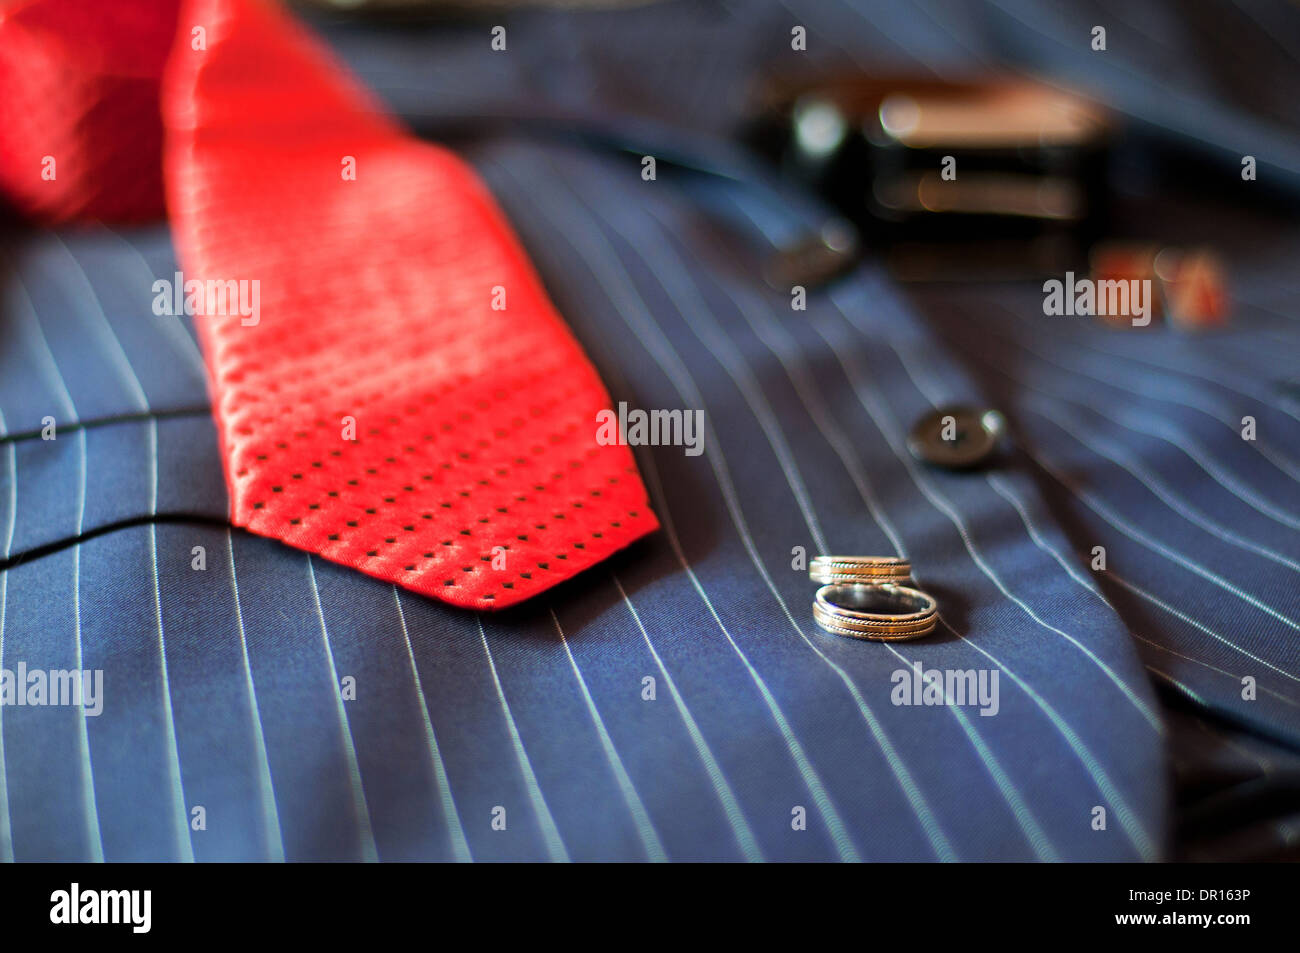 wedding rings, red tie, belt and cuff links lie on a wedding suit of the groom - Stock Image